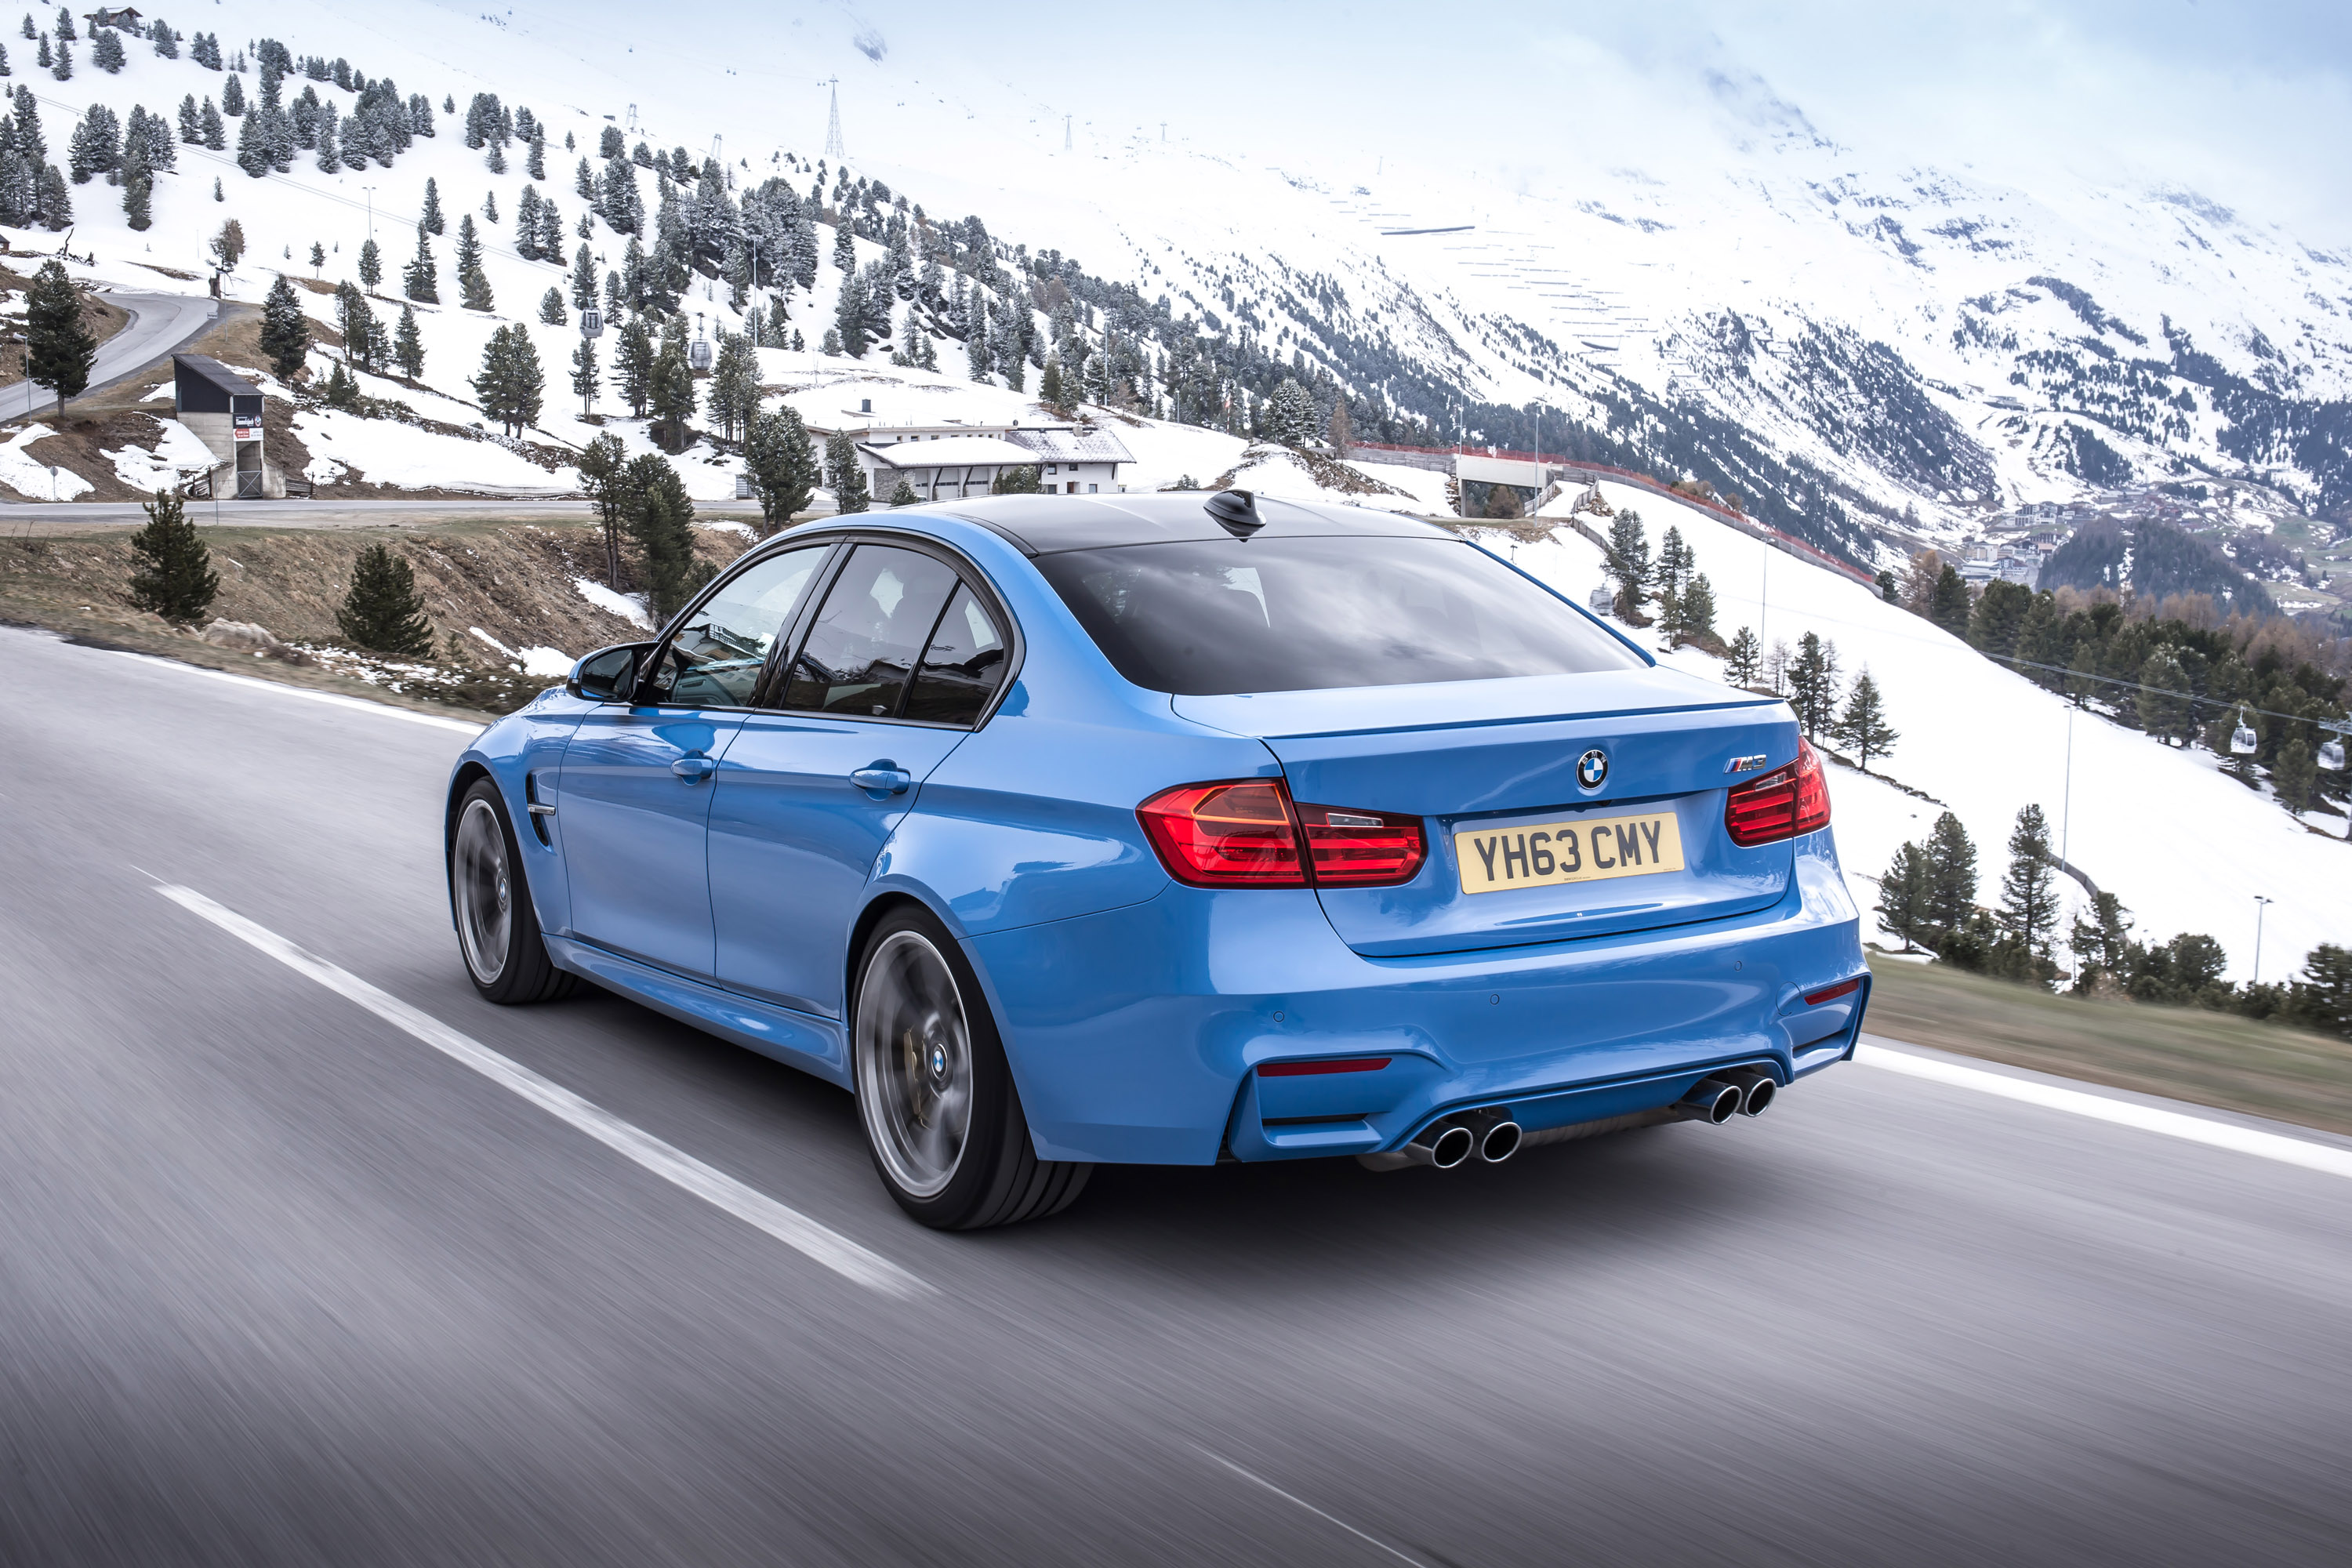 2014 bmw m3 saloon and m4 coupe uk price. Black Bedroom Furniture Sets. Home Design Ideas